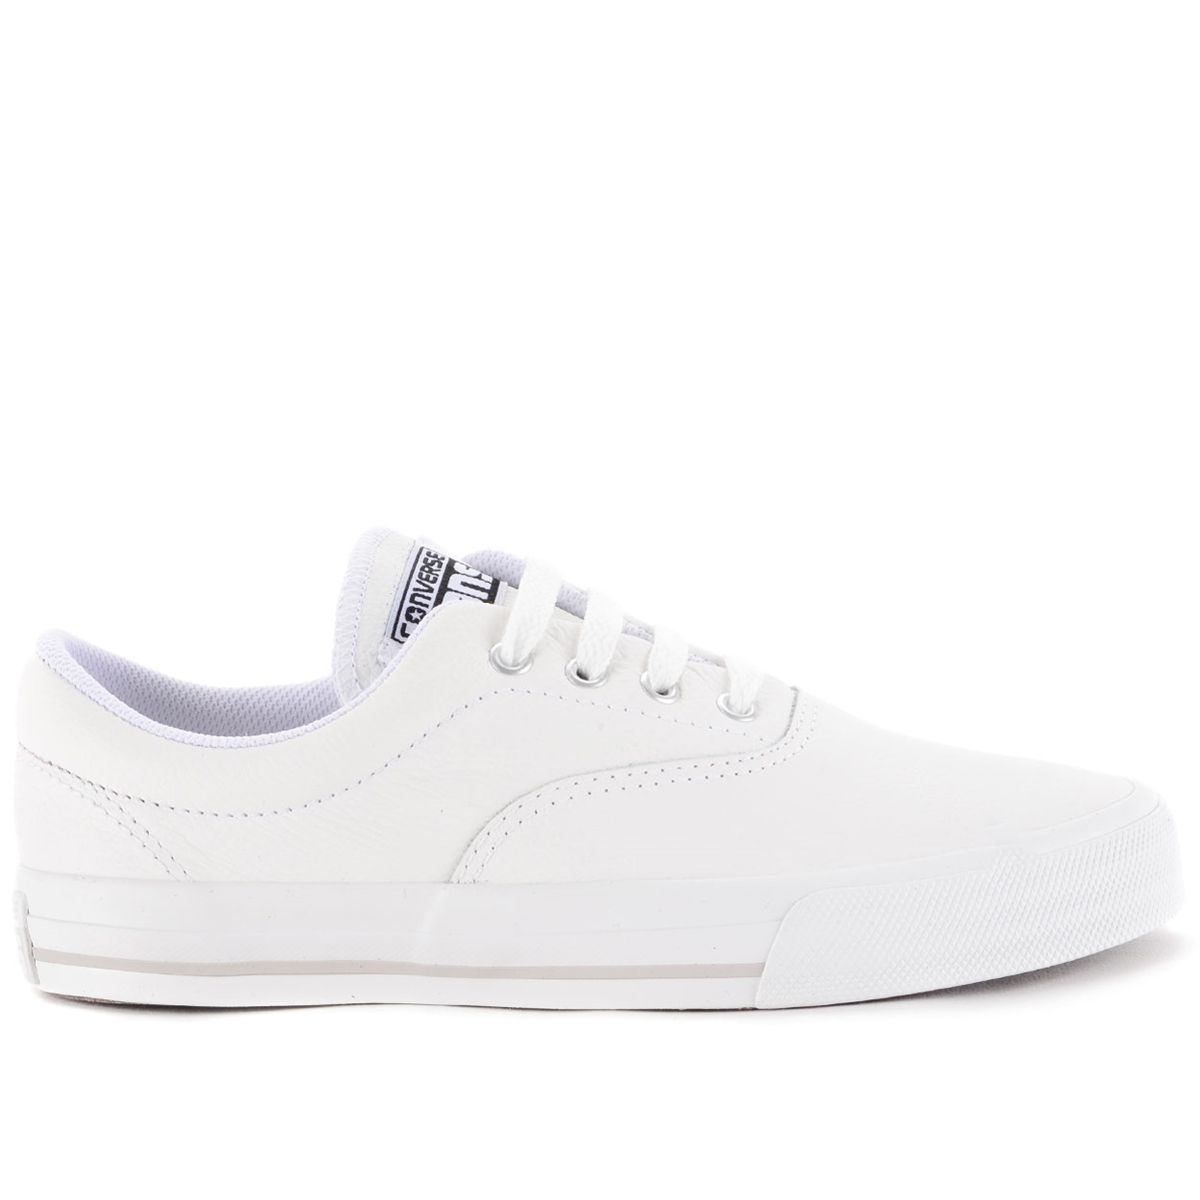 a23ed164165 Tênis Converse Cons Skateboard Skidgrip CVO Leather Ox Branco CR340002